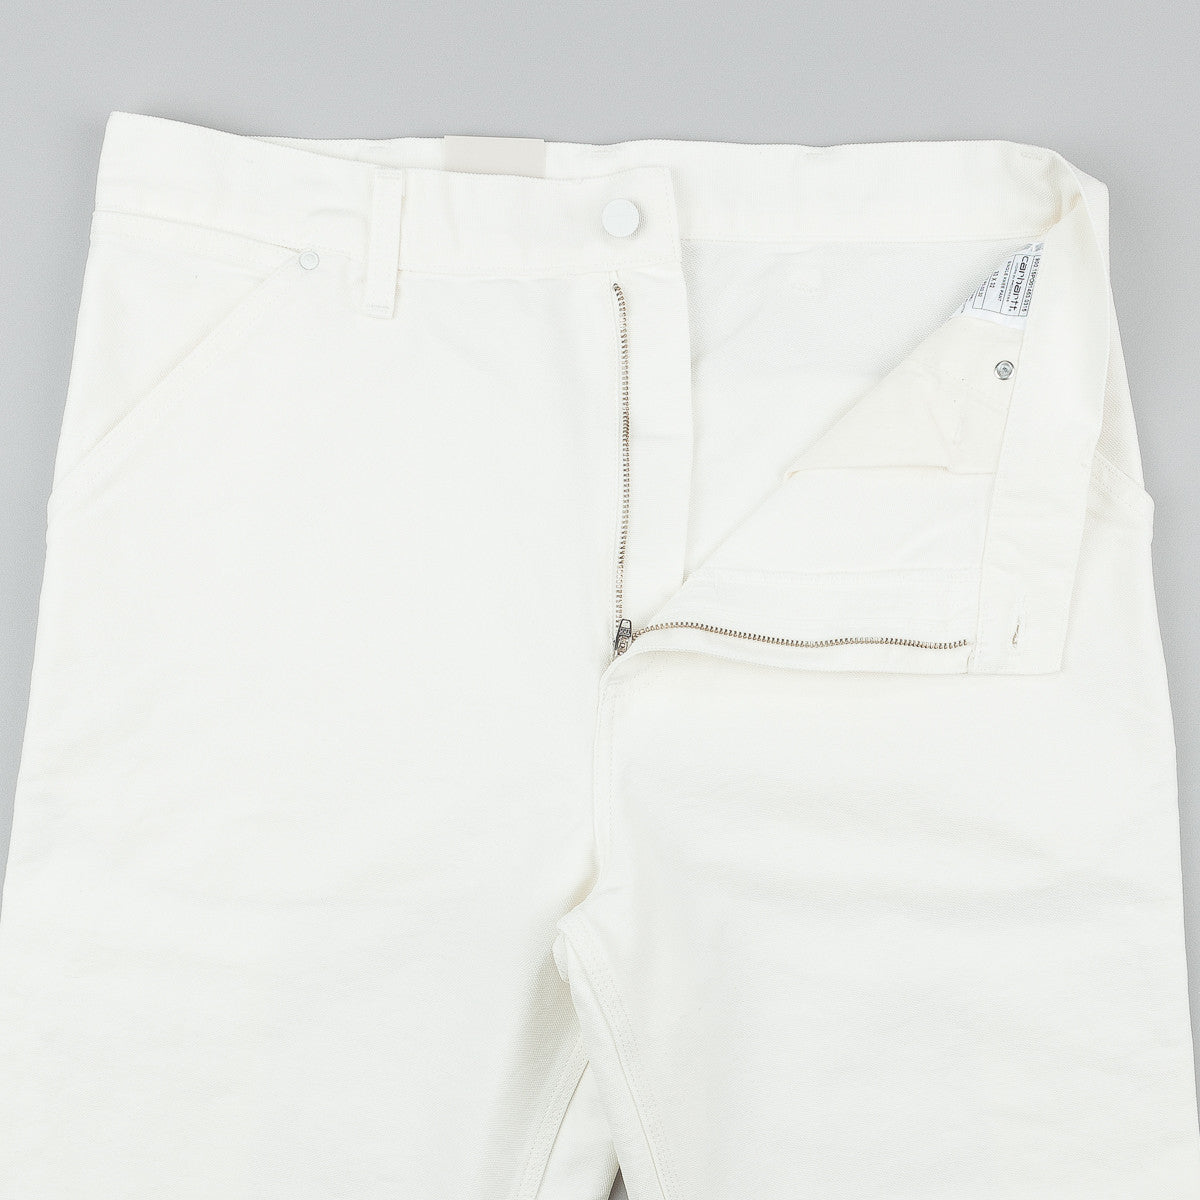 Carhartt Single Knee Trousers - Broken White Rinsed